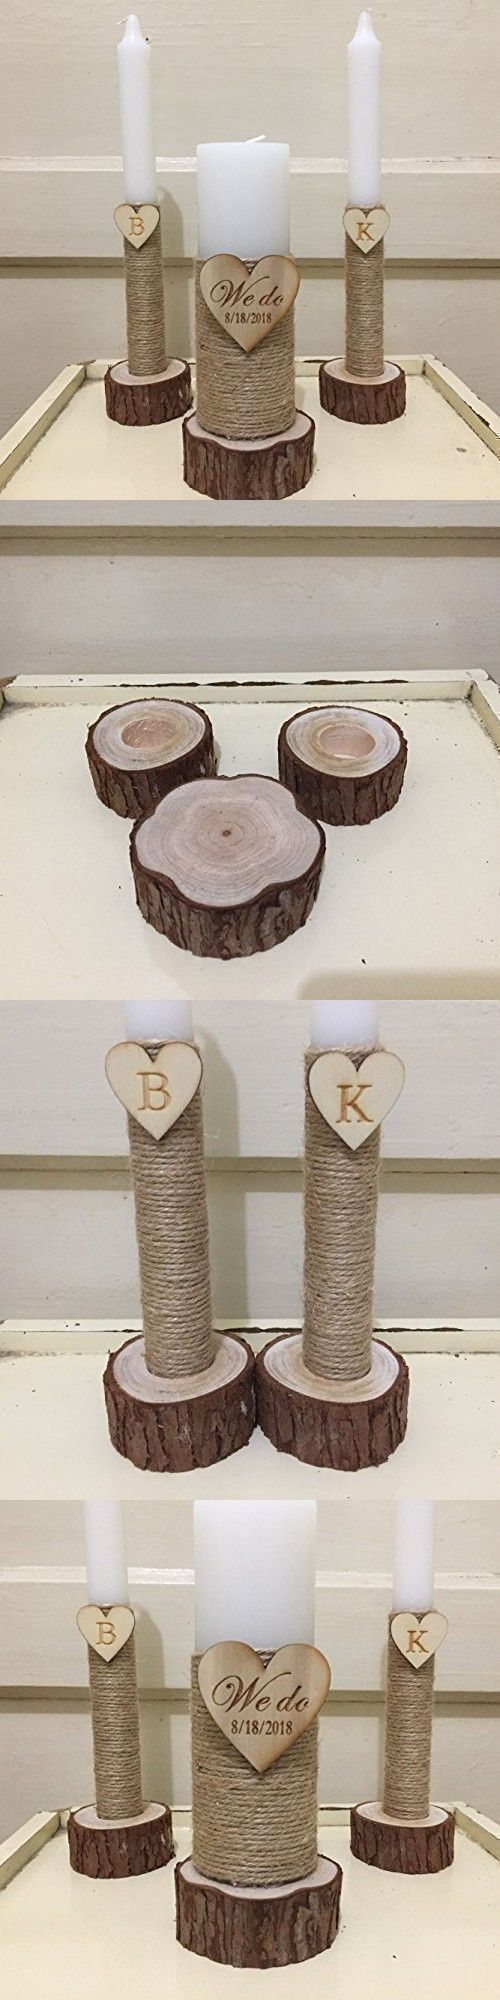 Custom Wedding Candles Set, We do Wedding Ceremony Accessories Unity Candle Set 6-Inch Pillar and 2 10-Inch Tapers, Personalised Wedding Unity Candle Set with Wood Candles Holders #floatingunitycandle #unitycandleholders #weddingceremony